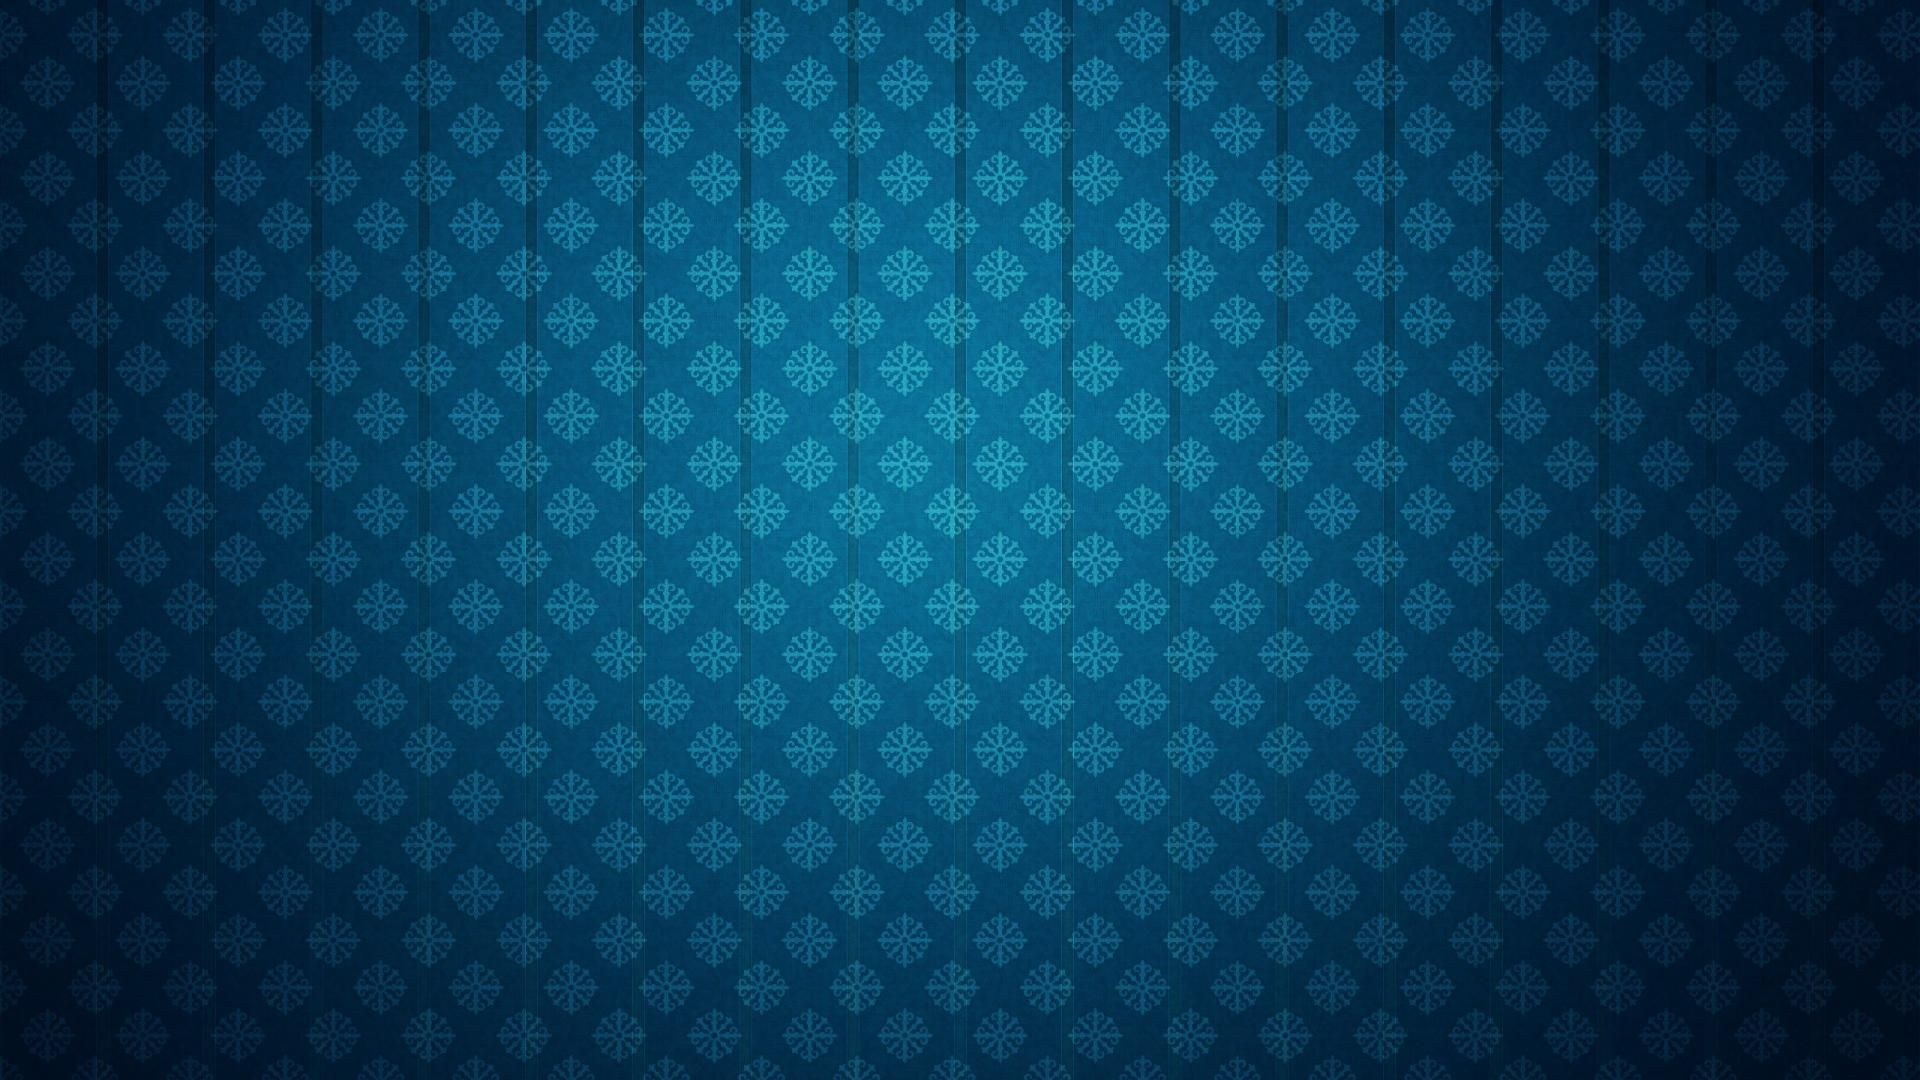 Cool Backgrounds Abstract Blue Design Material Wallpapers Hd